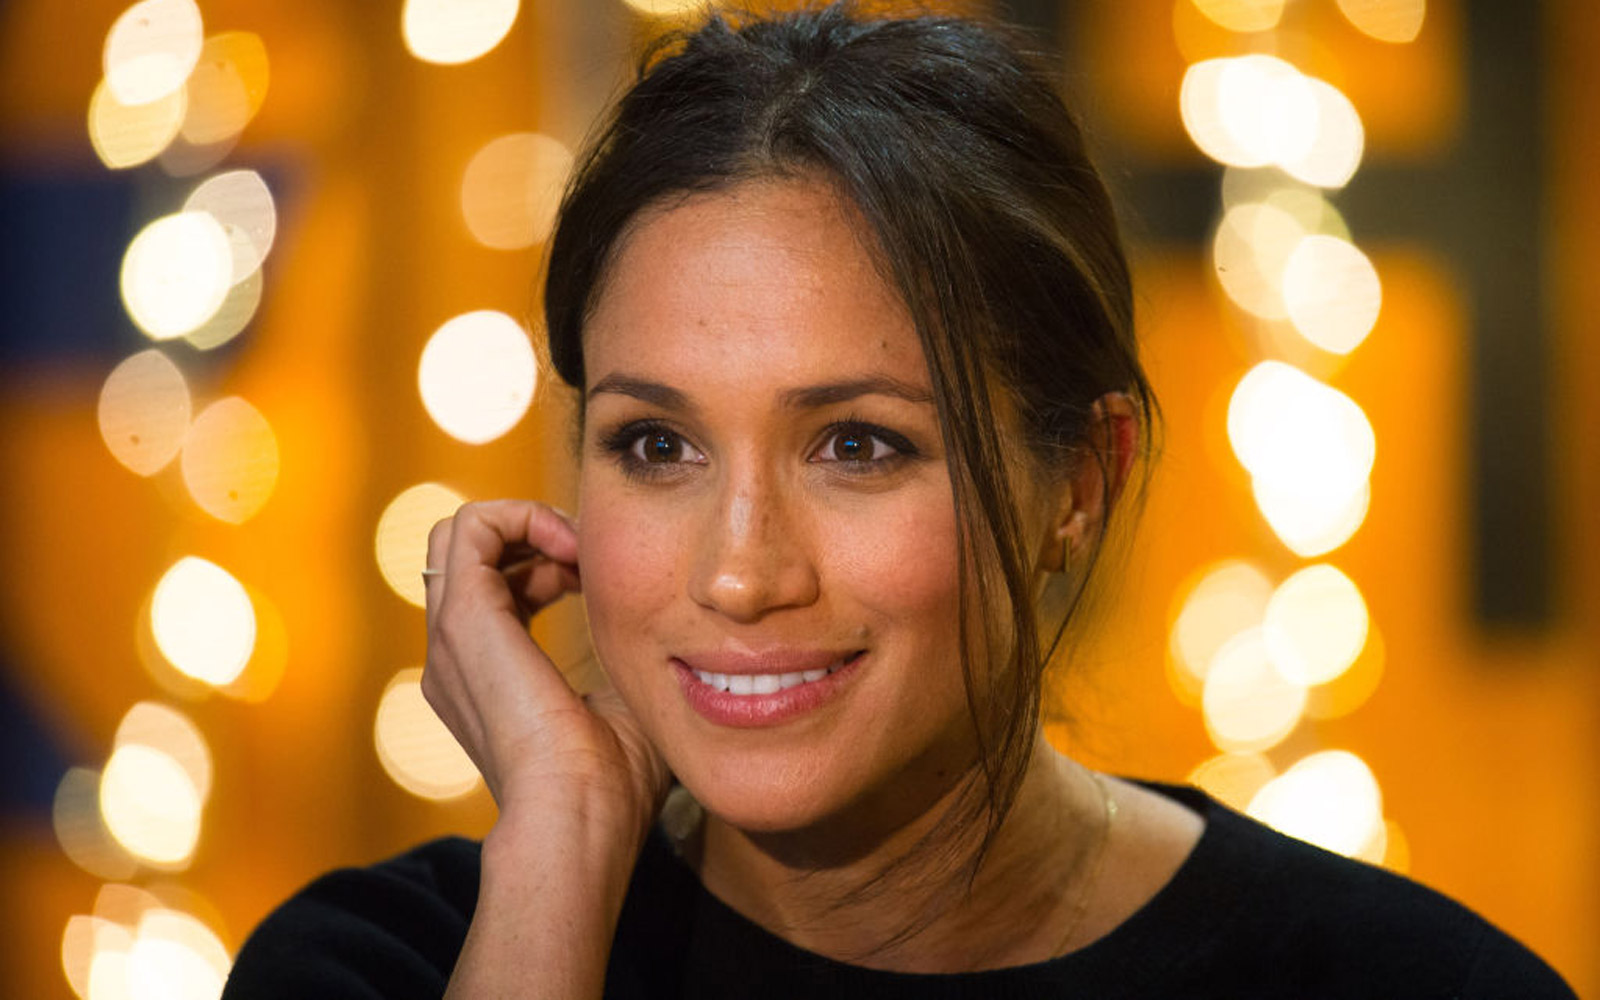 Meghan Markle's Romantic Necklace Would Make the Perfect Valentine's Day Gift